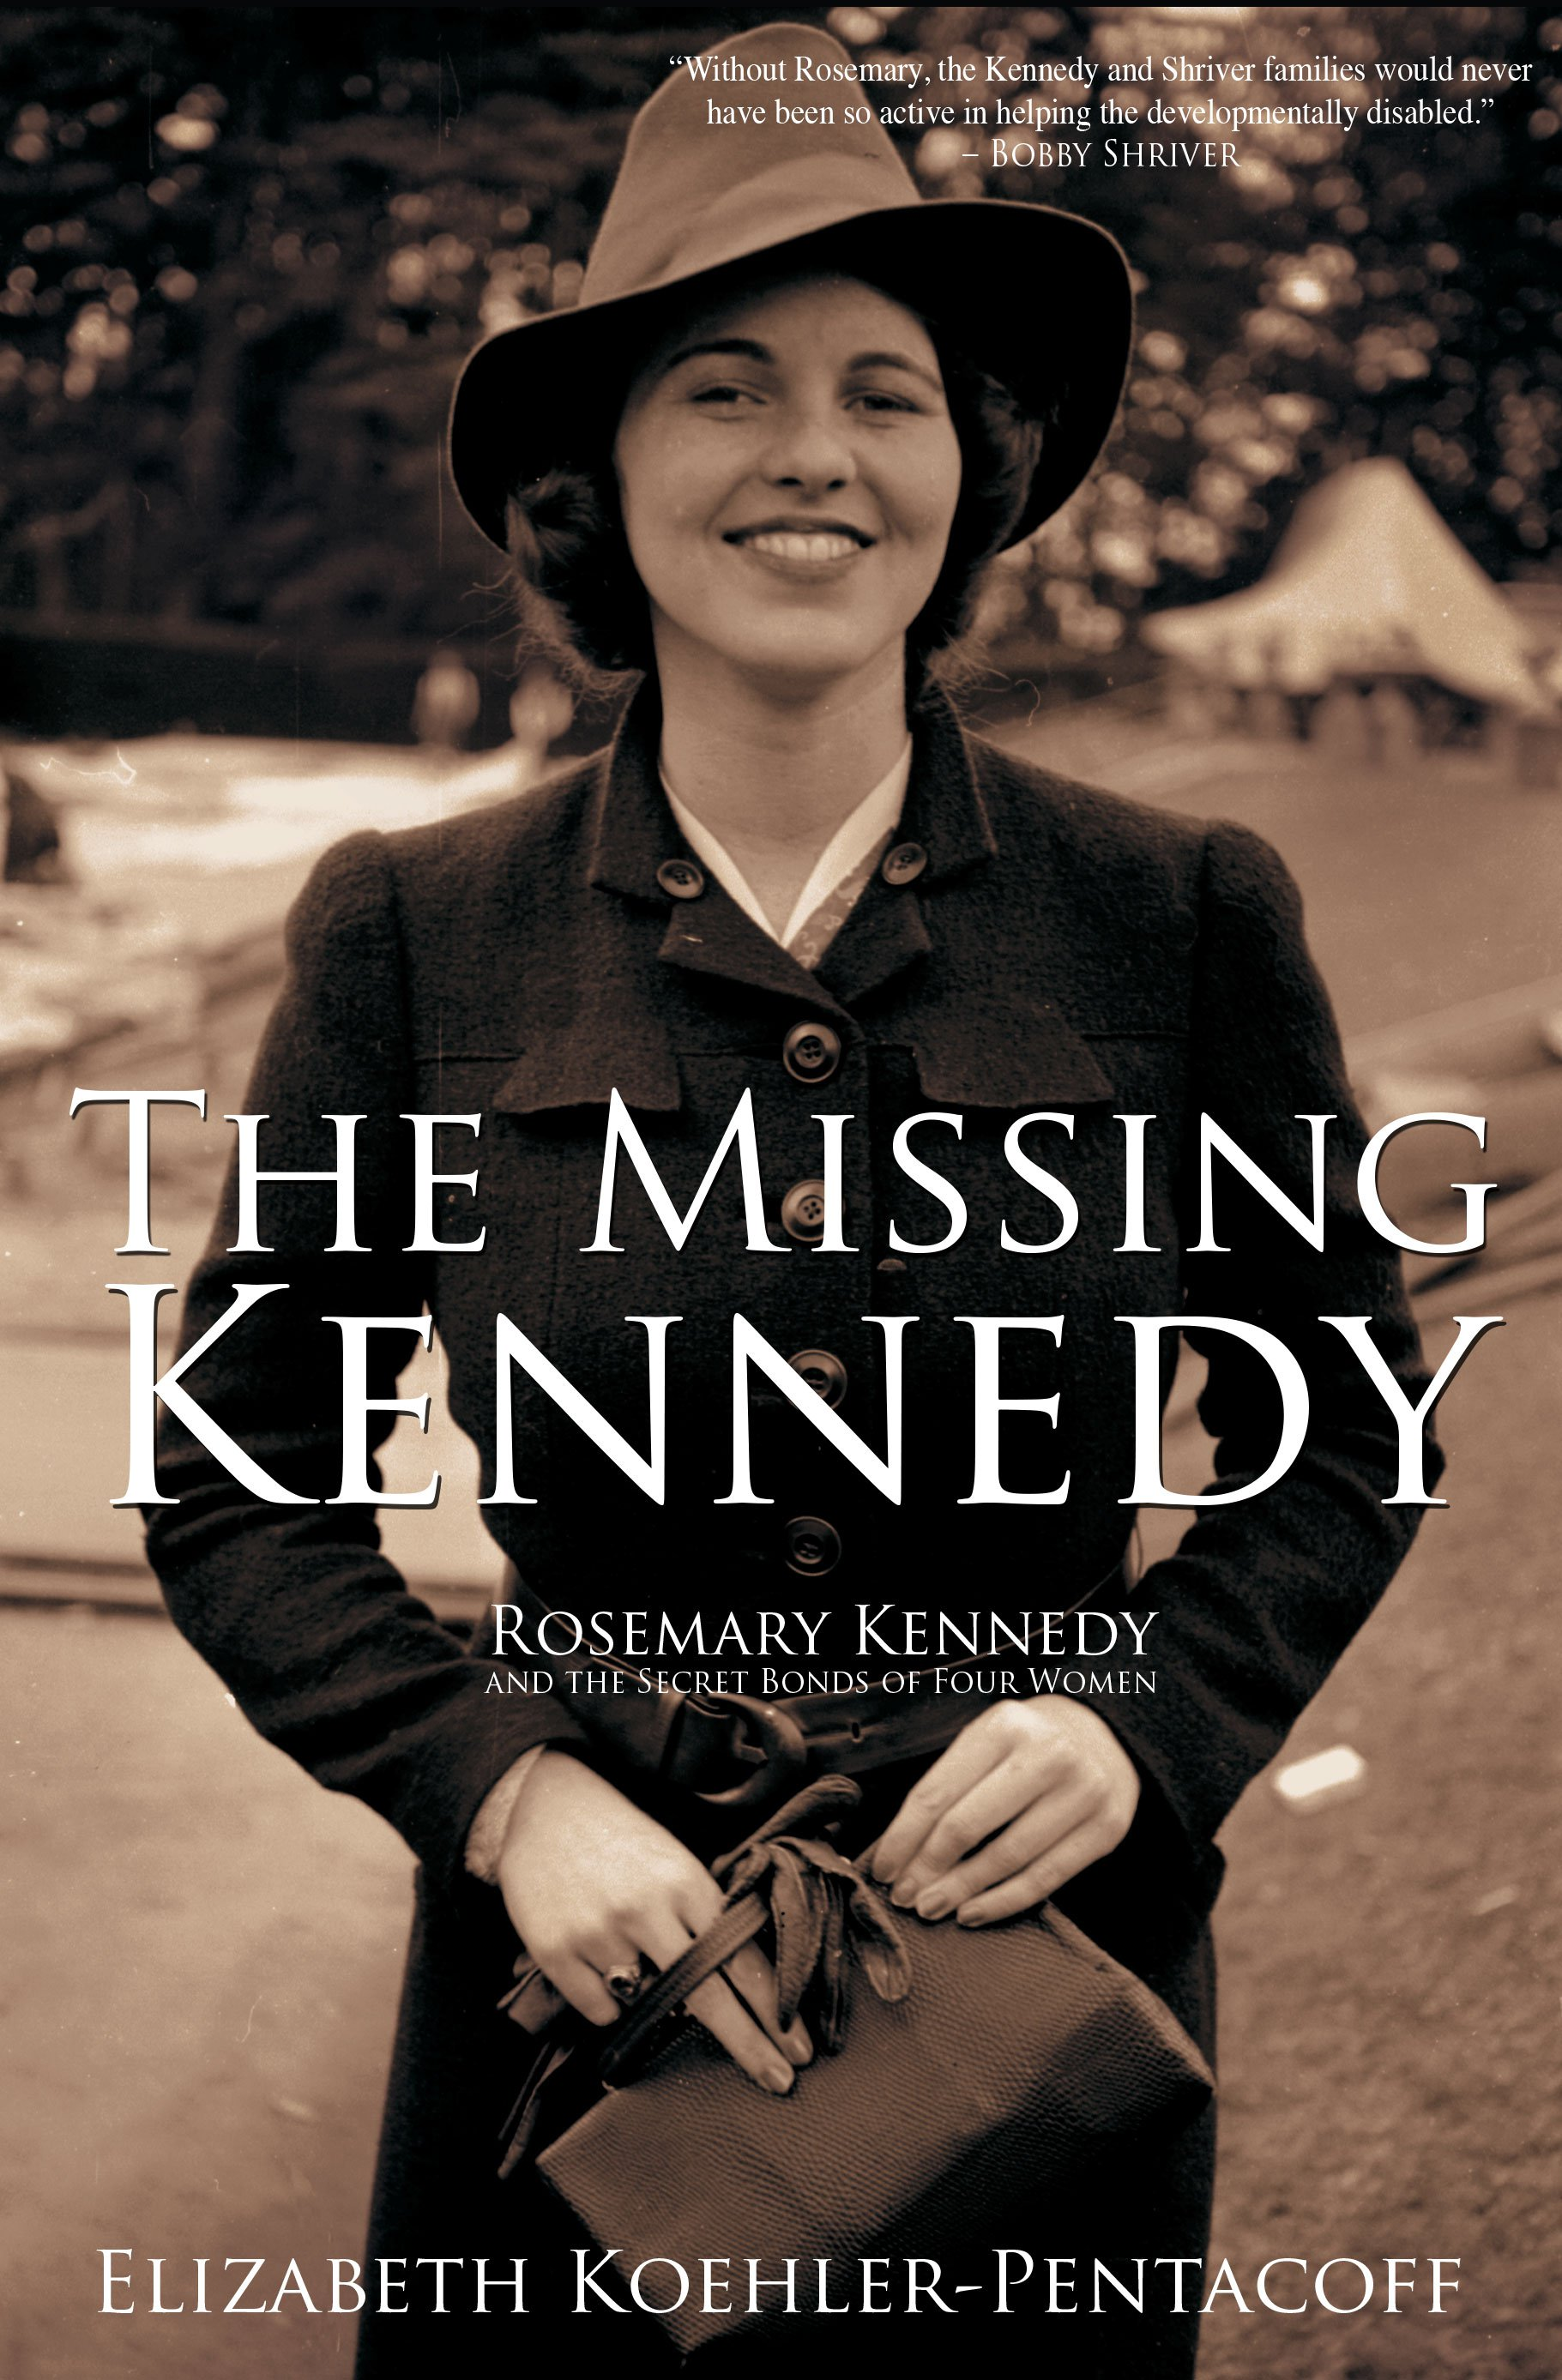 The Missing Kennedy explores the last years of Rosemary Kennedy's life.